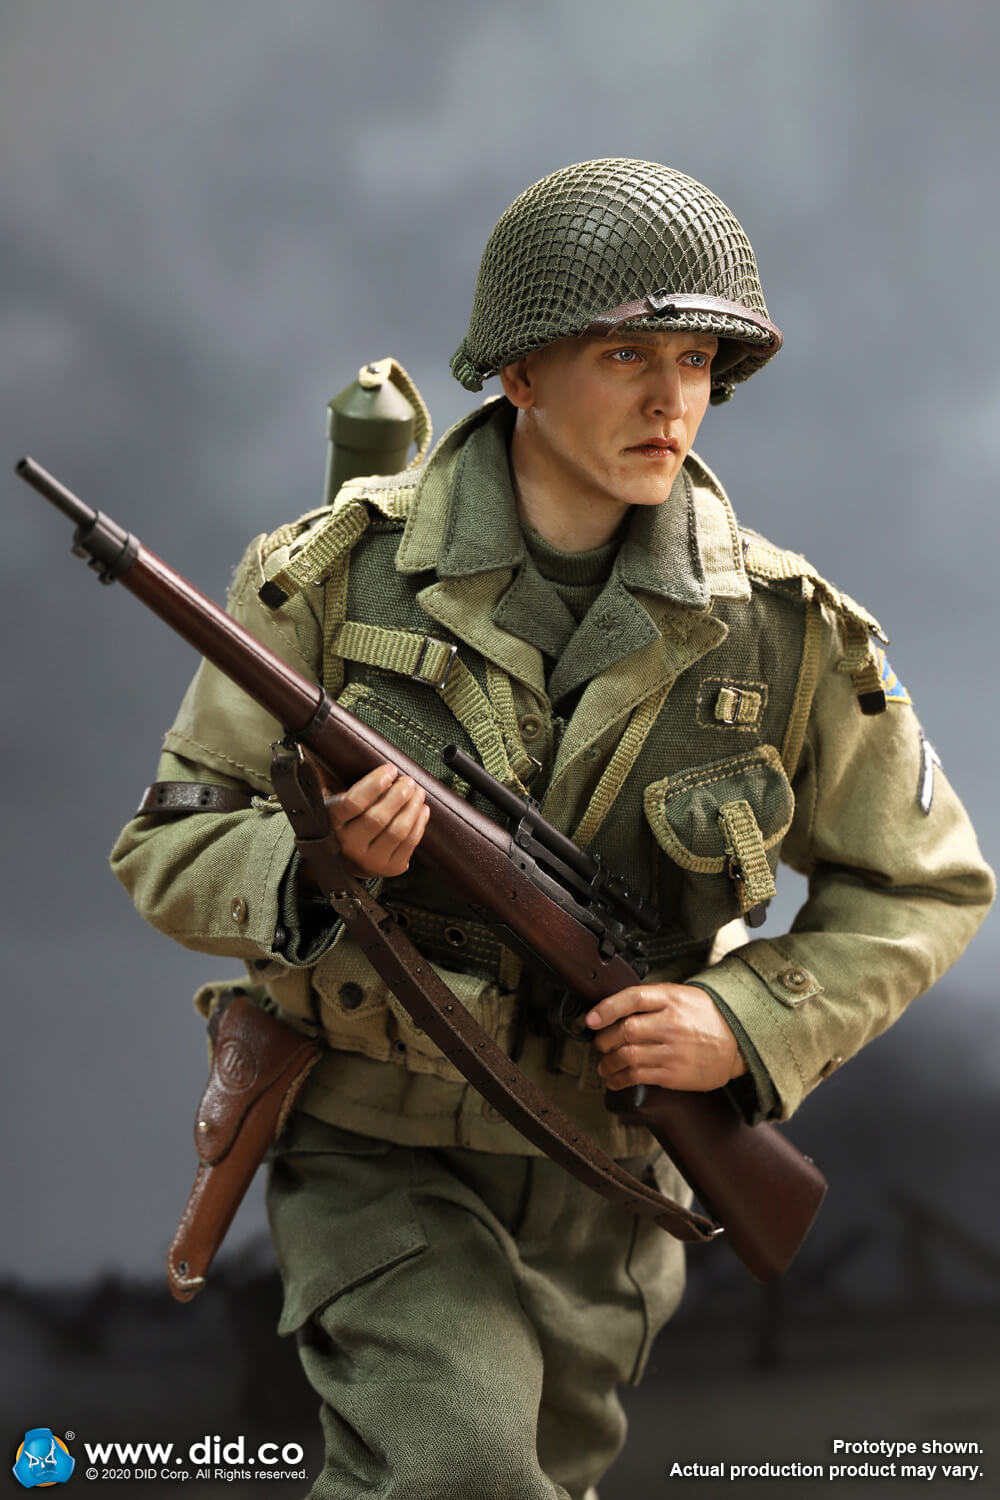 DiD - NEW PRODUCT: DiD: A80144 WWII US 2nd Ranger Battalion Series 4 Private Jackson 2748